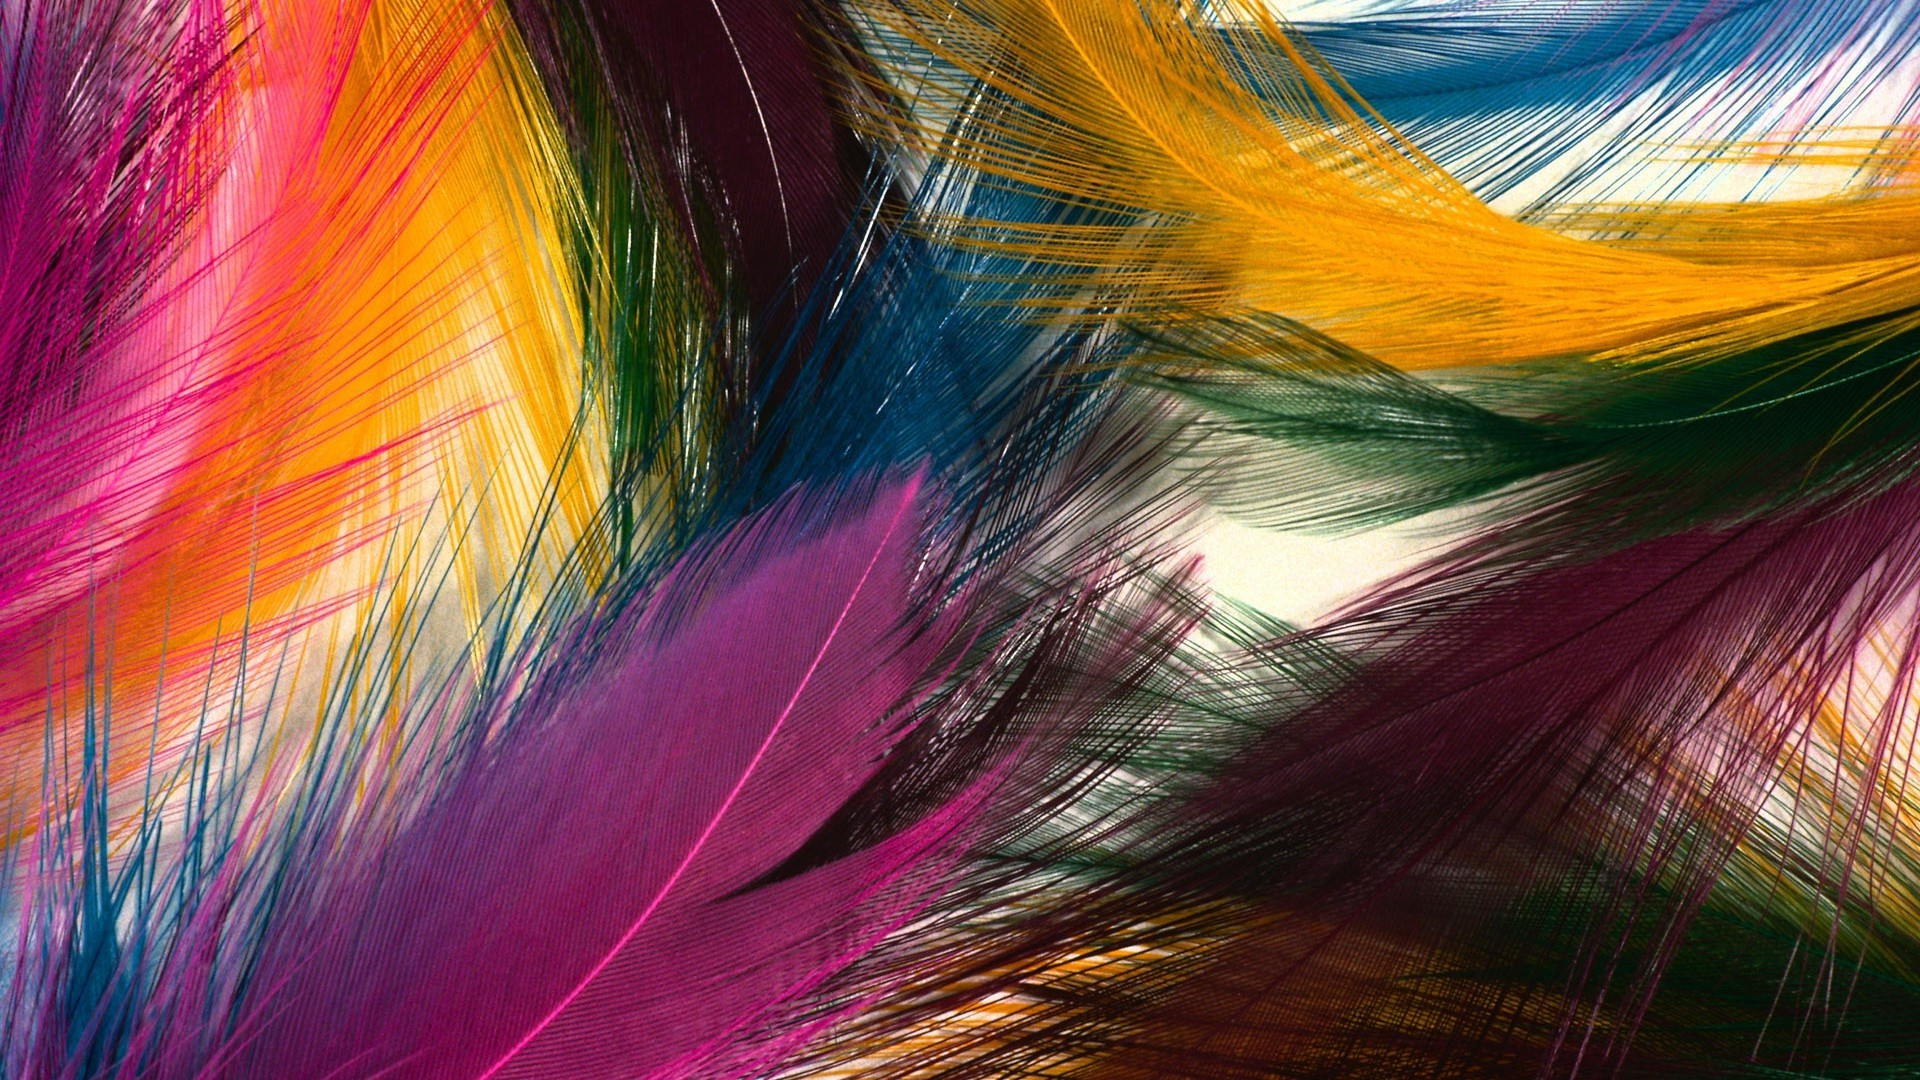 Love Music Android Wallpapers 960x854 Hd Wallpaper For: Multicolored Feathers. Android Wallpapers For Free